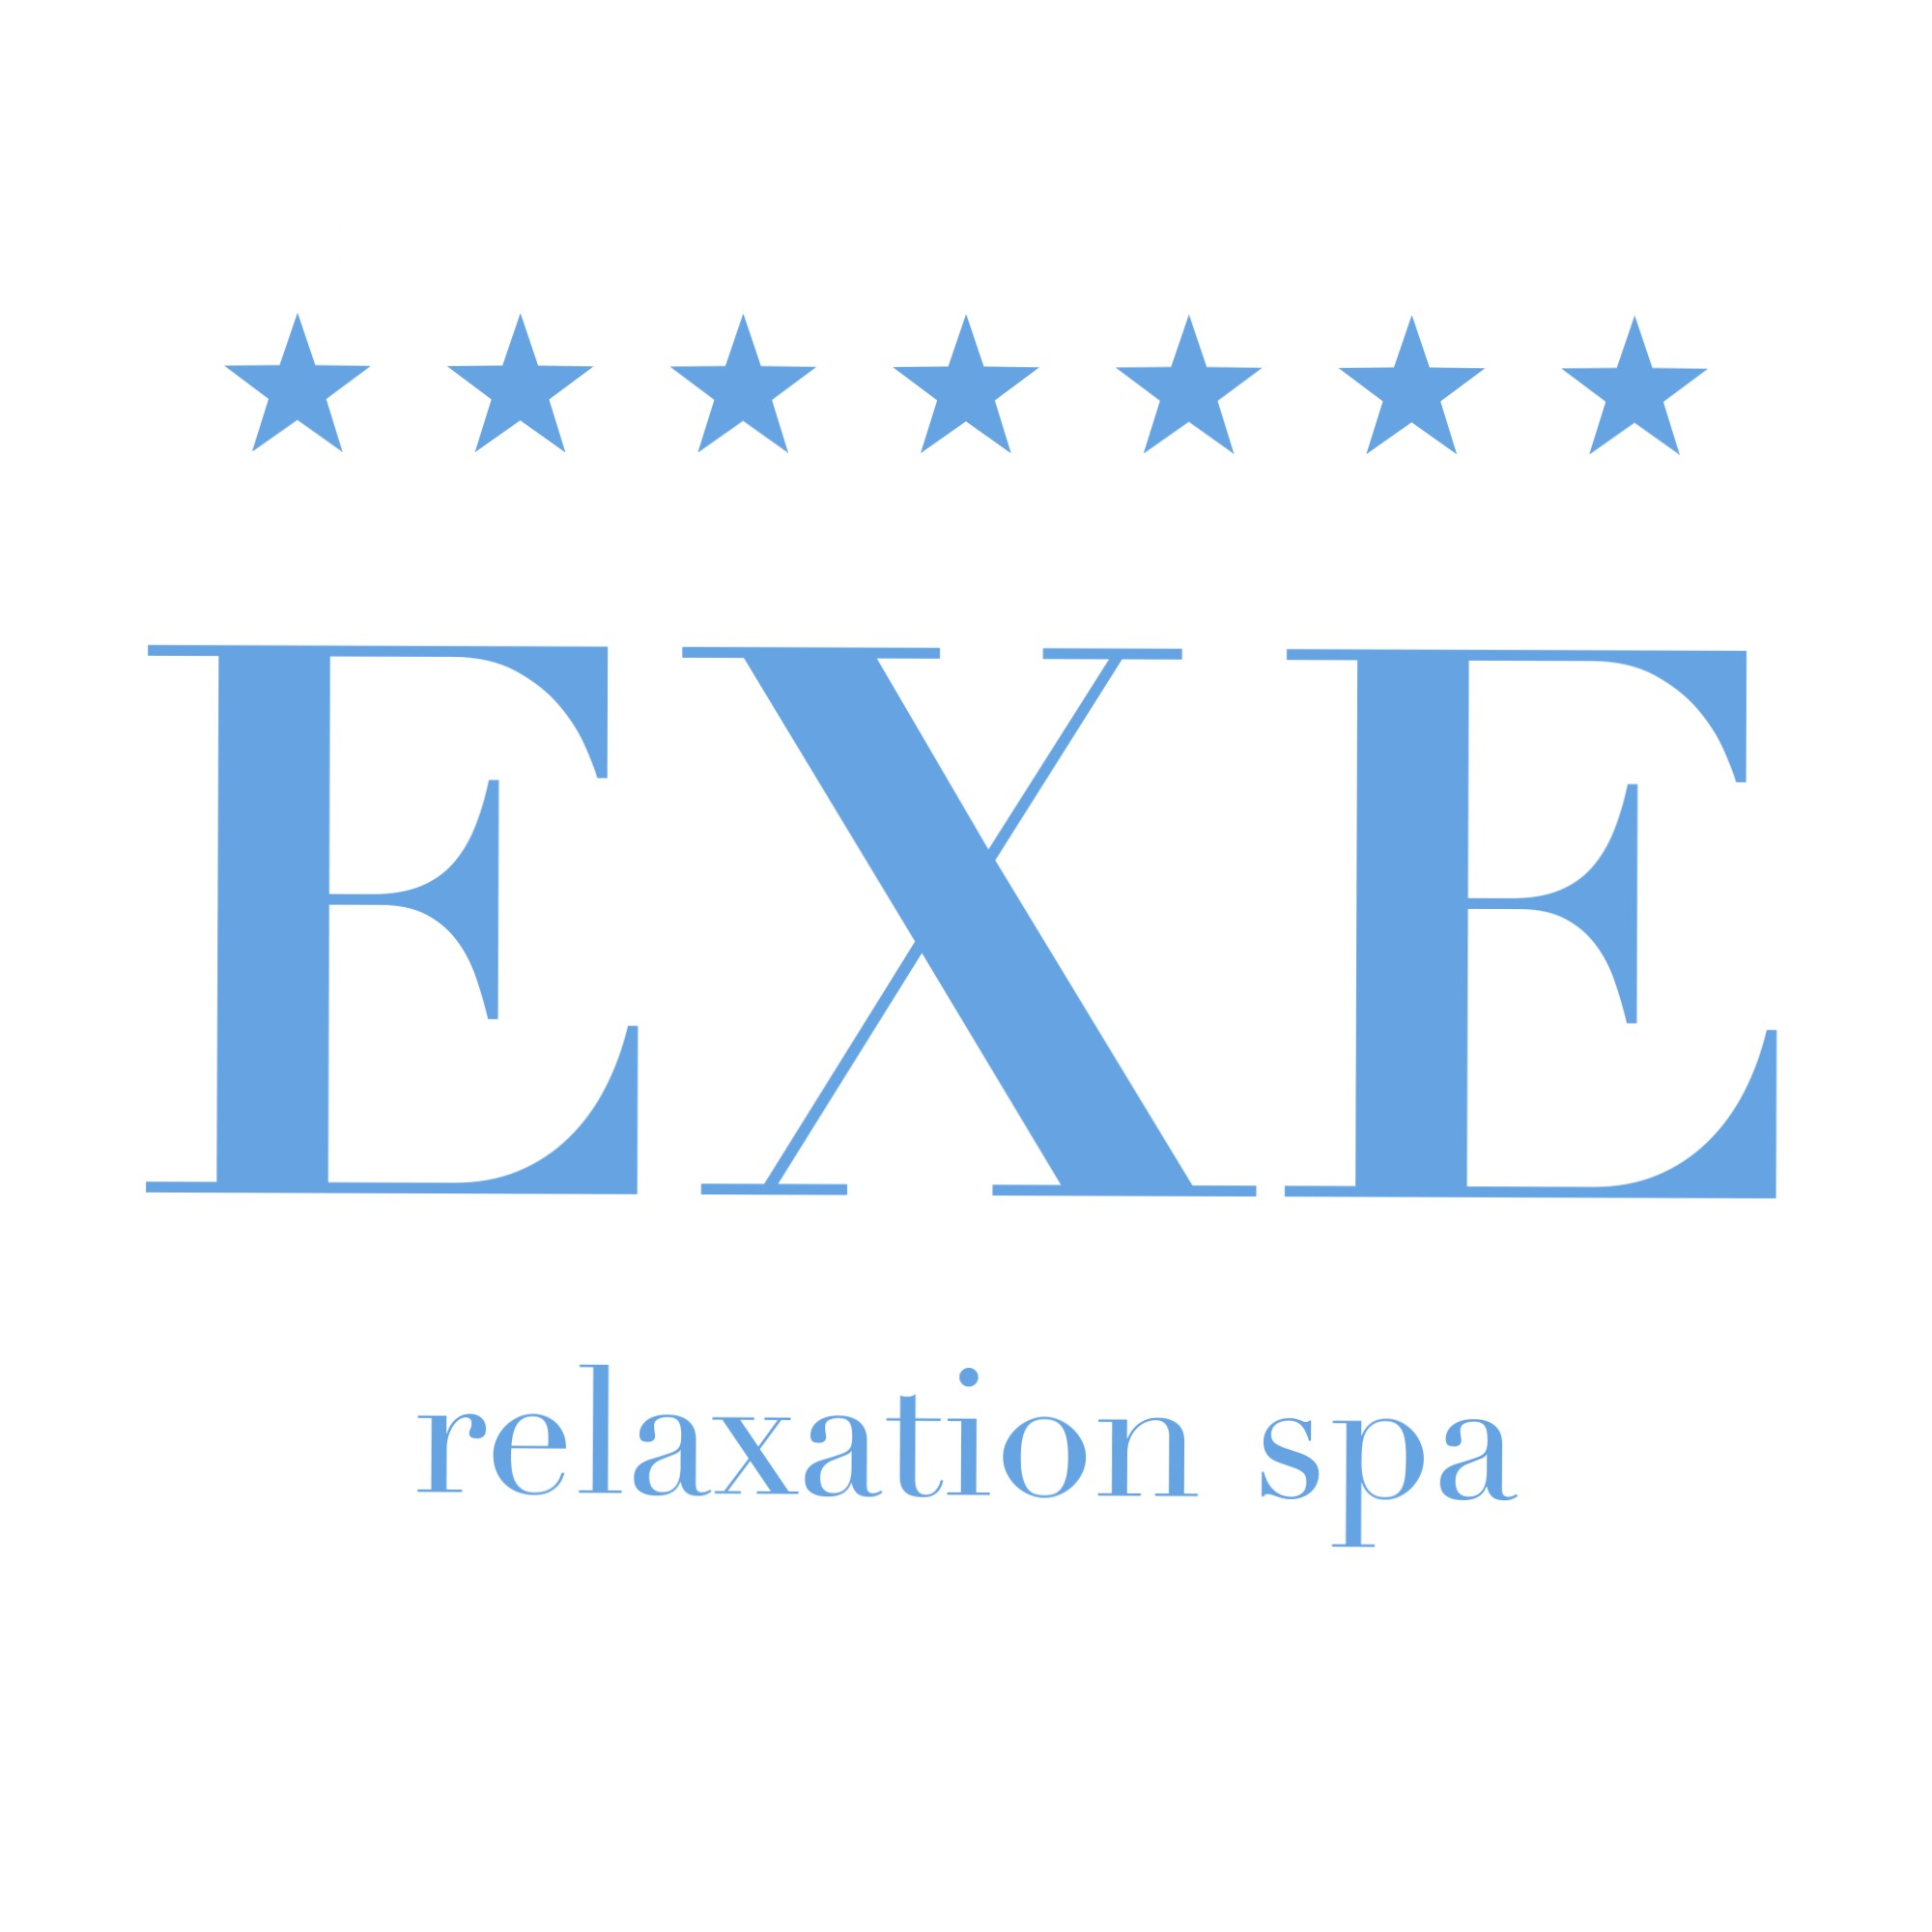 EXE-relaxation spa- (エグゼ)